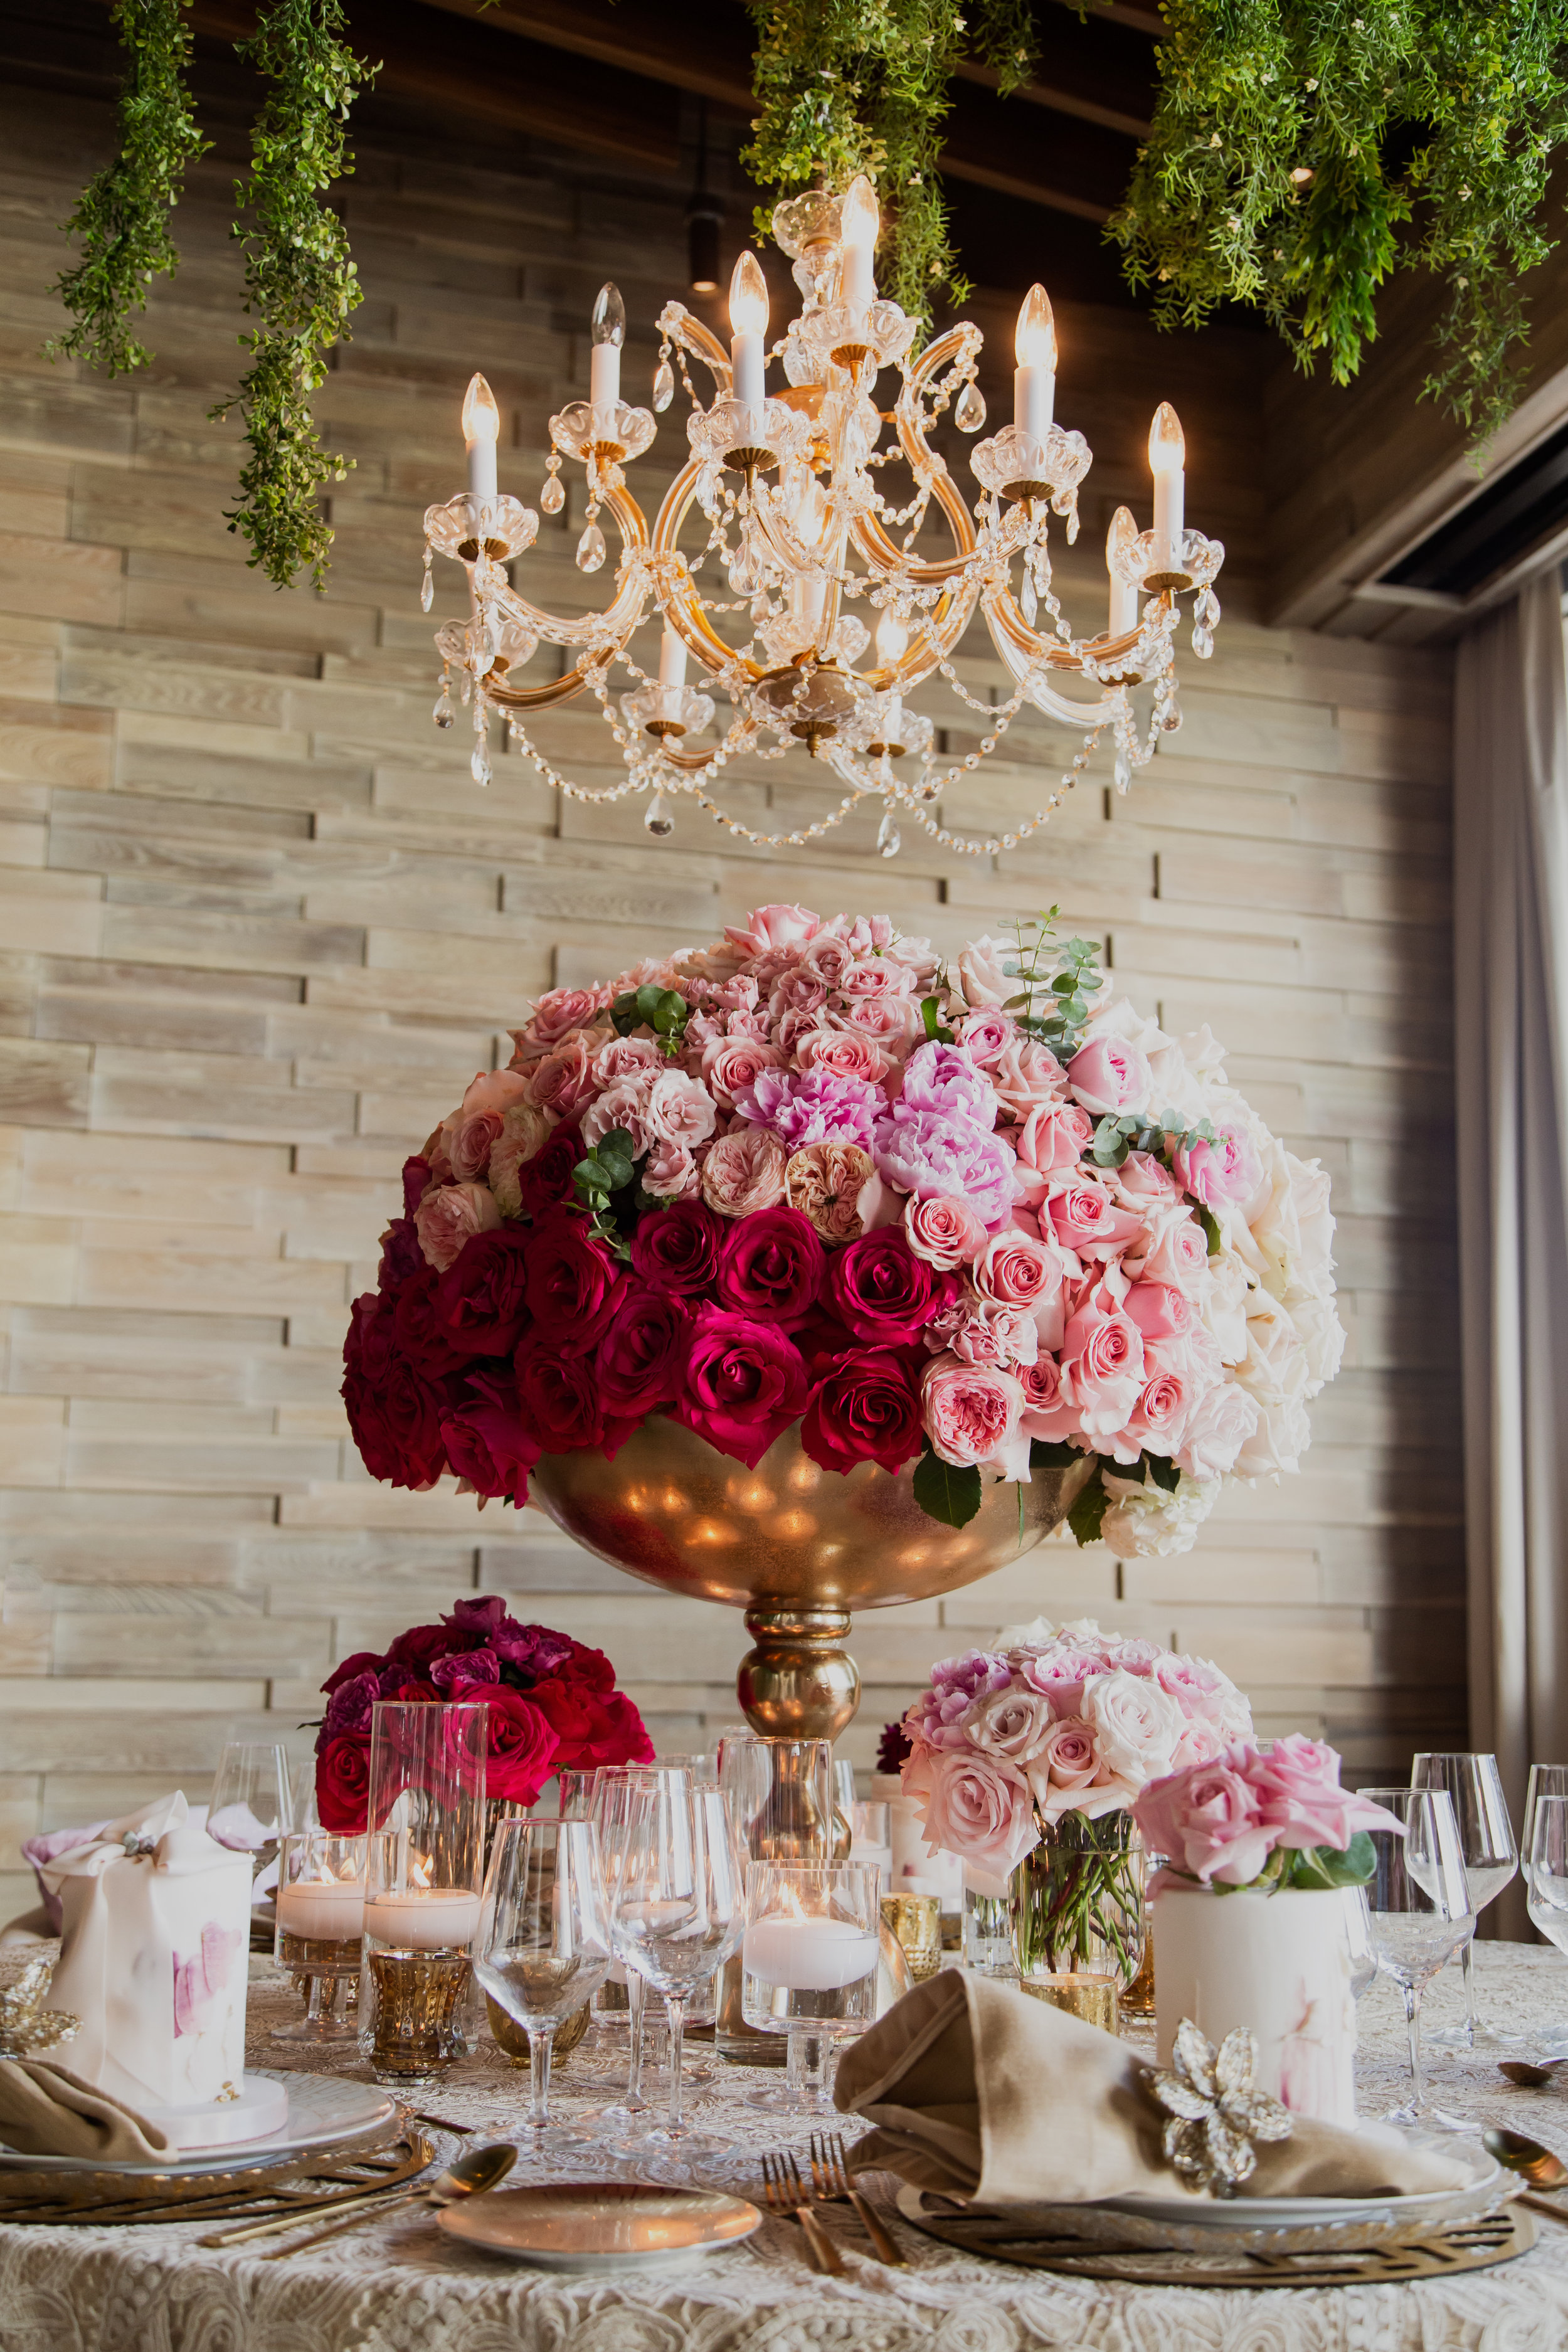 Pink ombre centerpiece on gold lace table cloth. Las Vegas Wedding Planner & Event Designer  Andrea Eppolito Events  · Photography by  Adam Frazier Photo  · Video by  M Place Productions  · Floral & Decor by  DBD Las Vegas  · Venue  ARIA Primrose Ballroom  · Cigar Band by  Royal Cigar Company  and  Jason of Beverly Hills  · Beauty by  Glammed Up Las Vegas  · Dress by  Vera Wang  · Salon  Couture Bride Las Vegas  · Shoes  Bella Belle Shoes  · Bride  Katrina May Armenta  · Groom  Lucas Cuevas